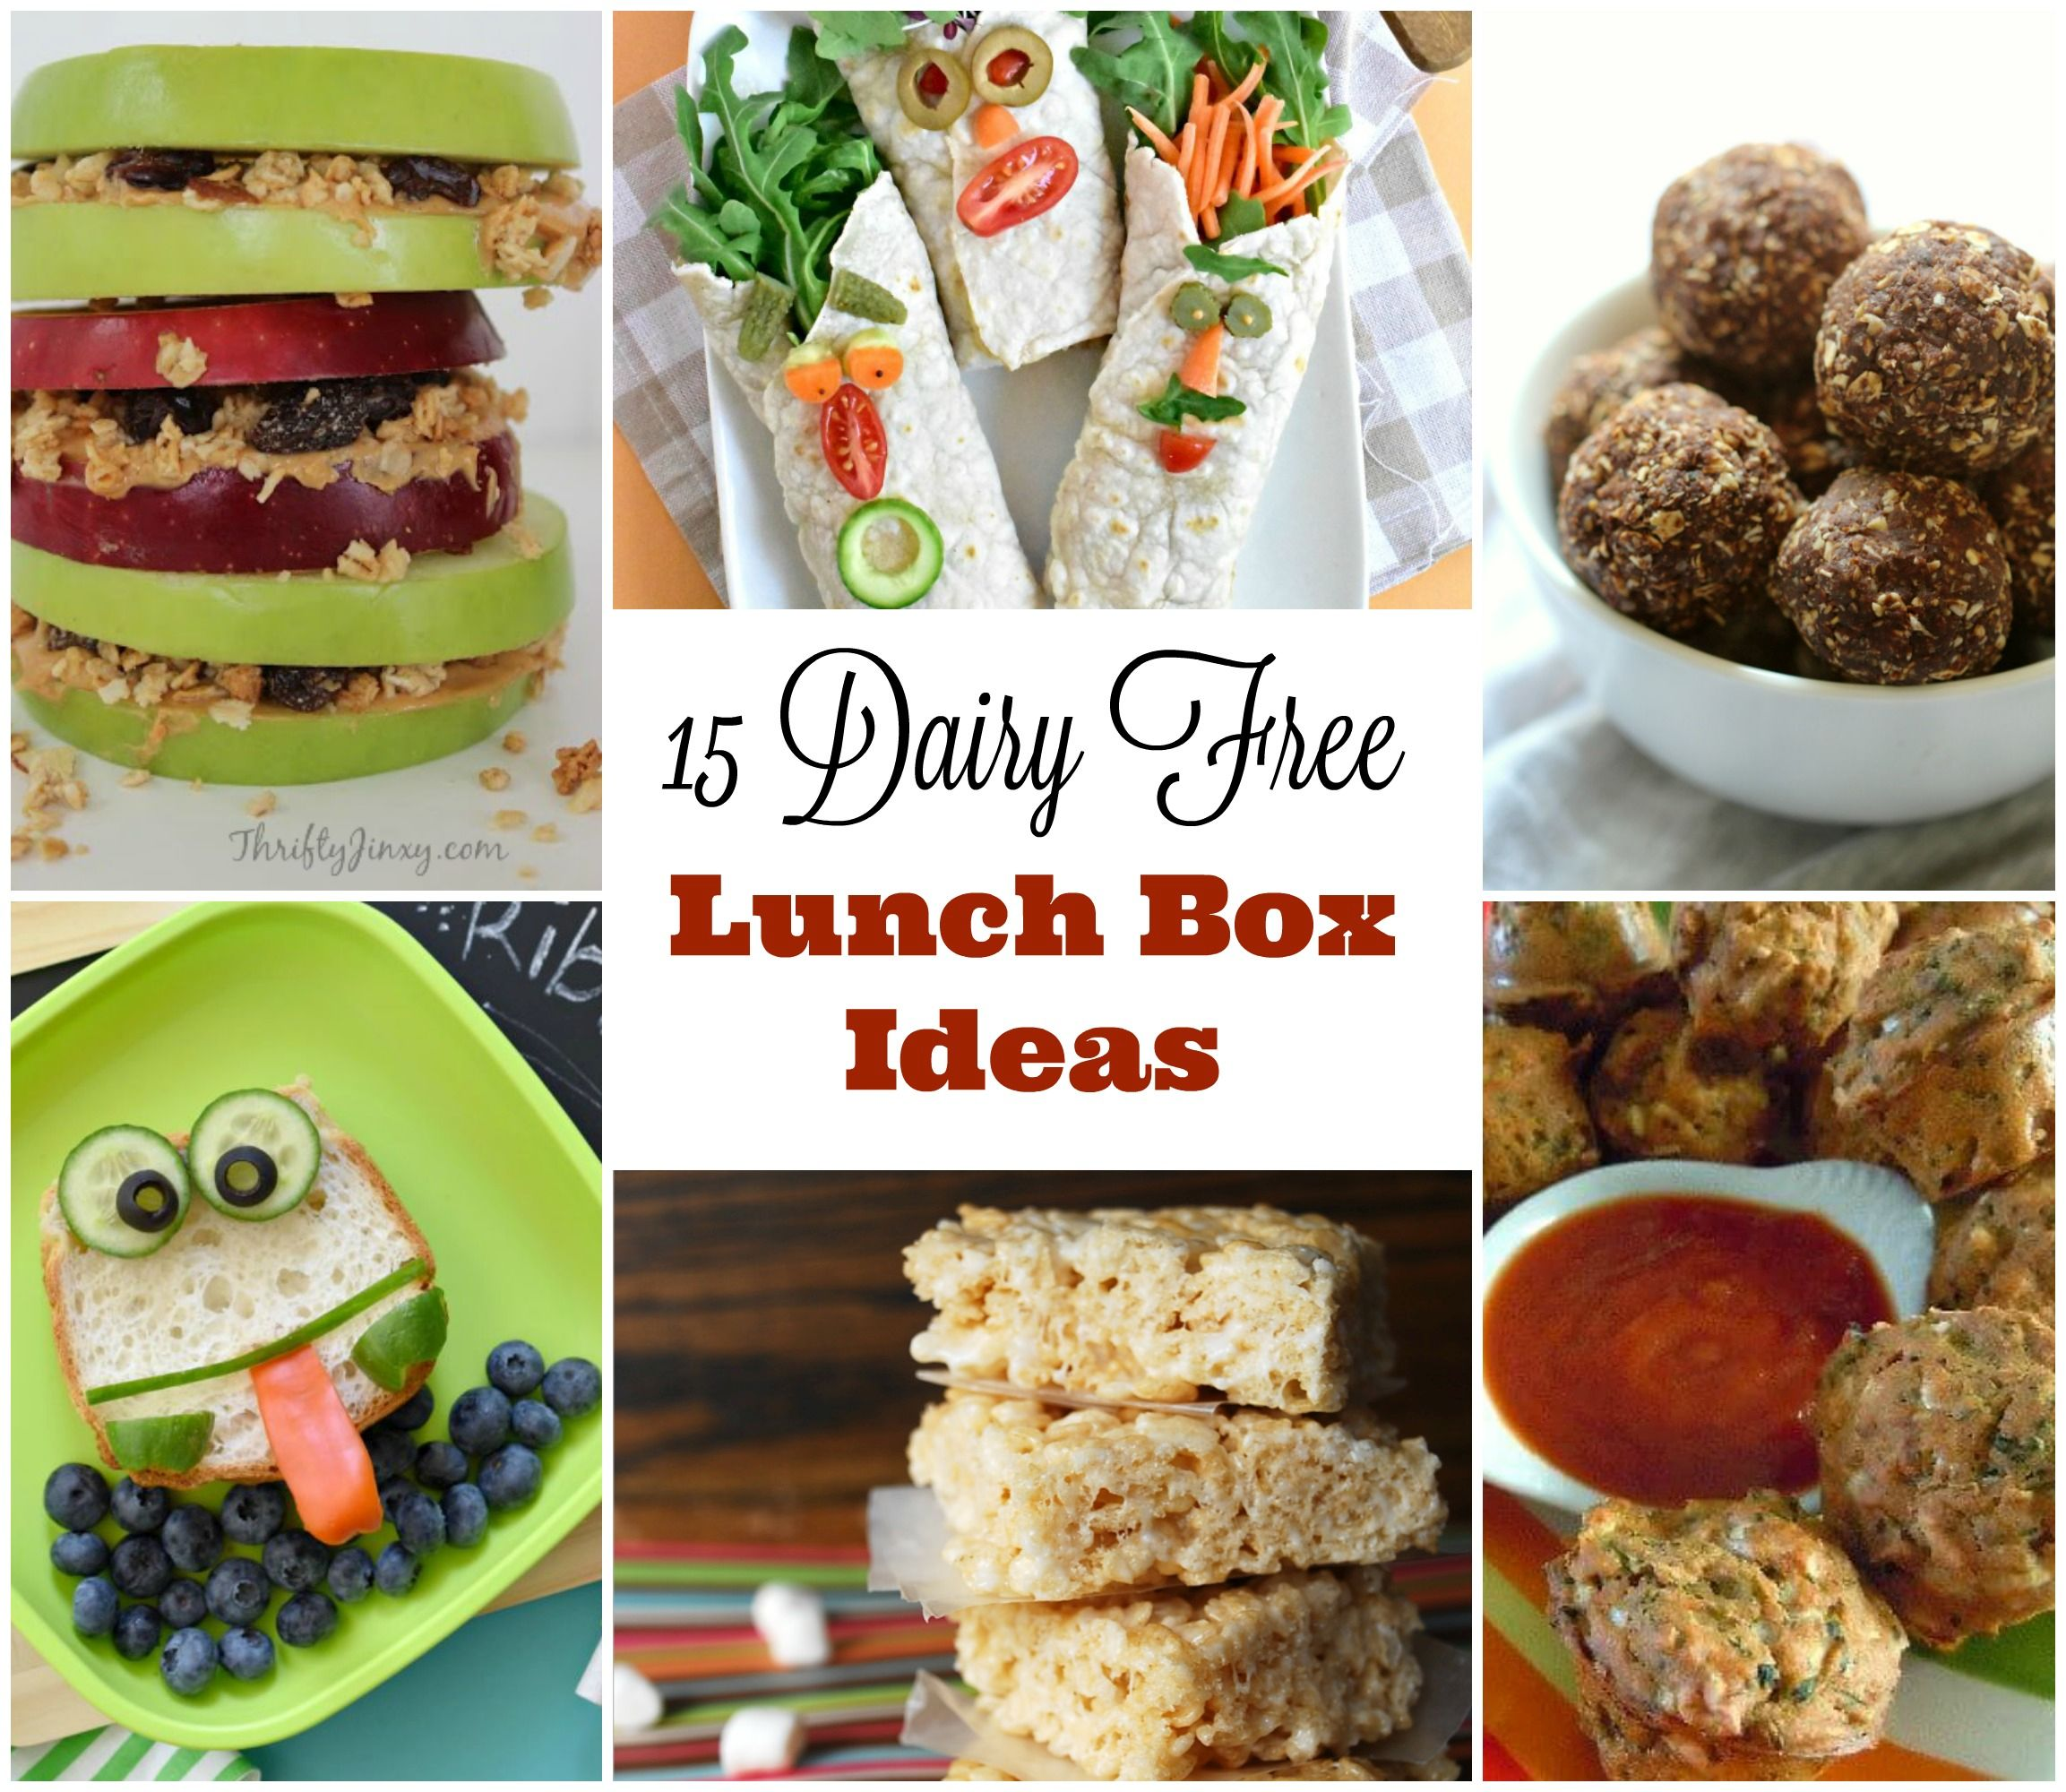 The Best Dairy Free Lunchbox Ideas!